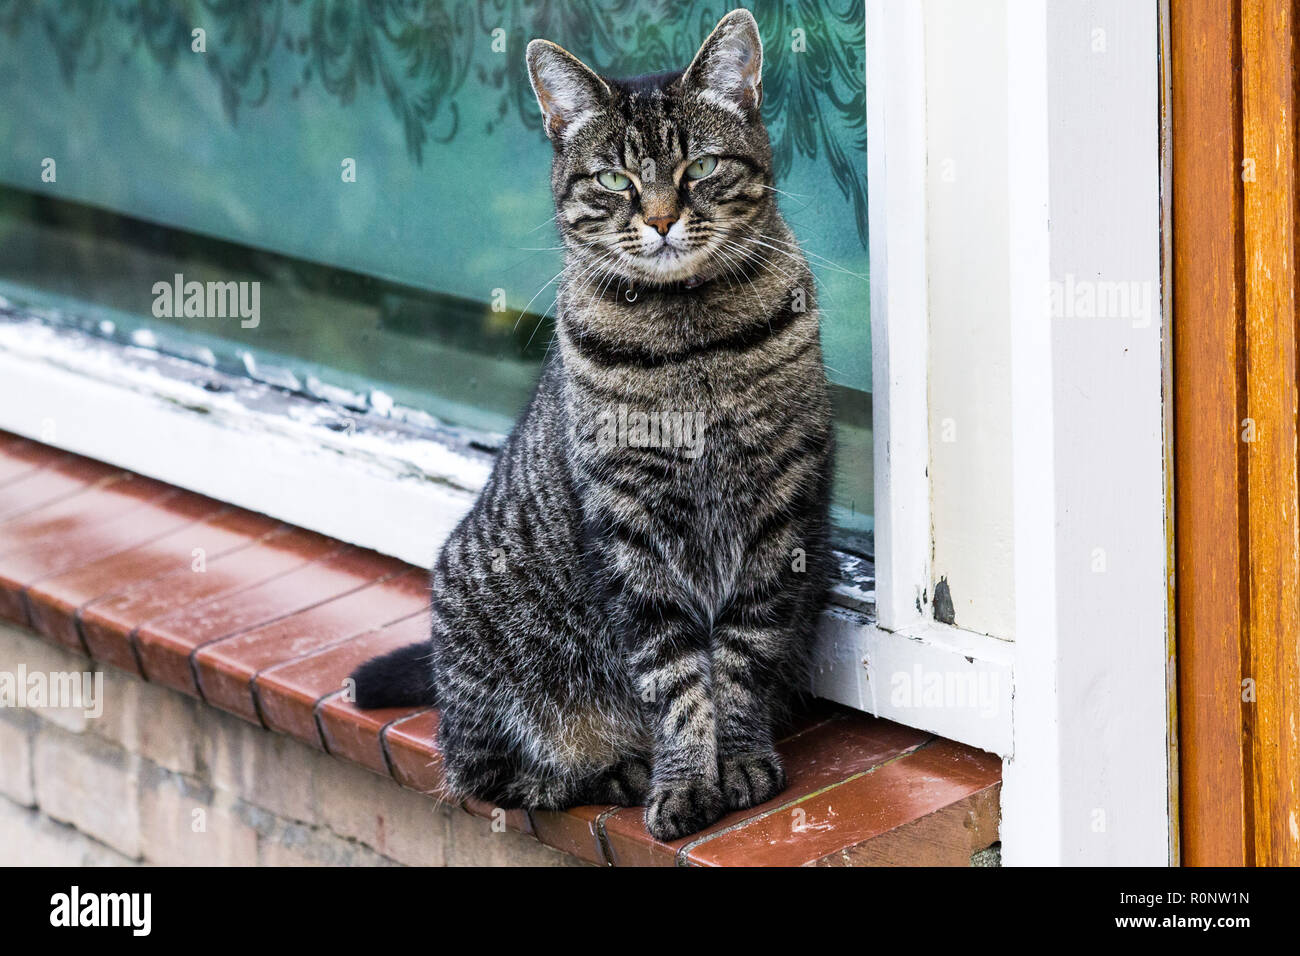 A beautiful cat sitting on a small ledge near the window posing for the camera. - Stock Image